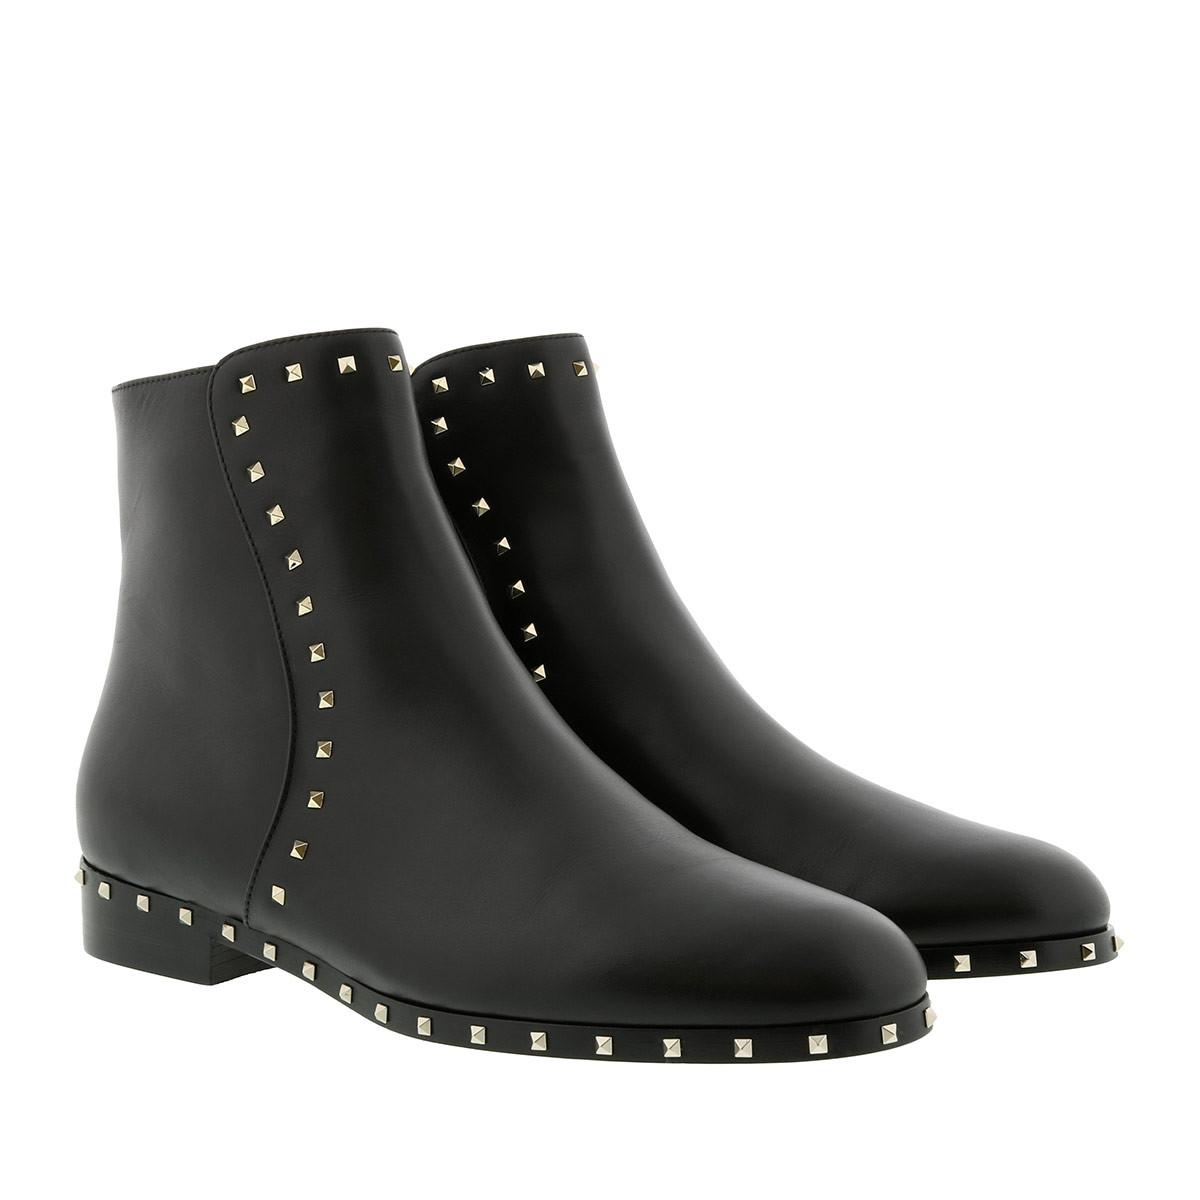 ec158f39f Valentino Rockstud Low Ankle Boots Leather Black in Black - Lyst